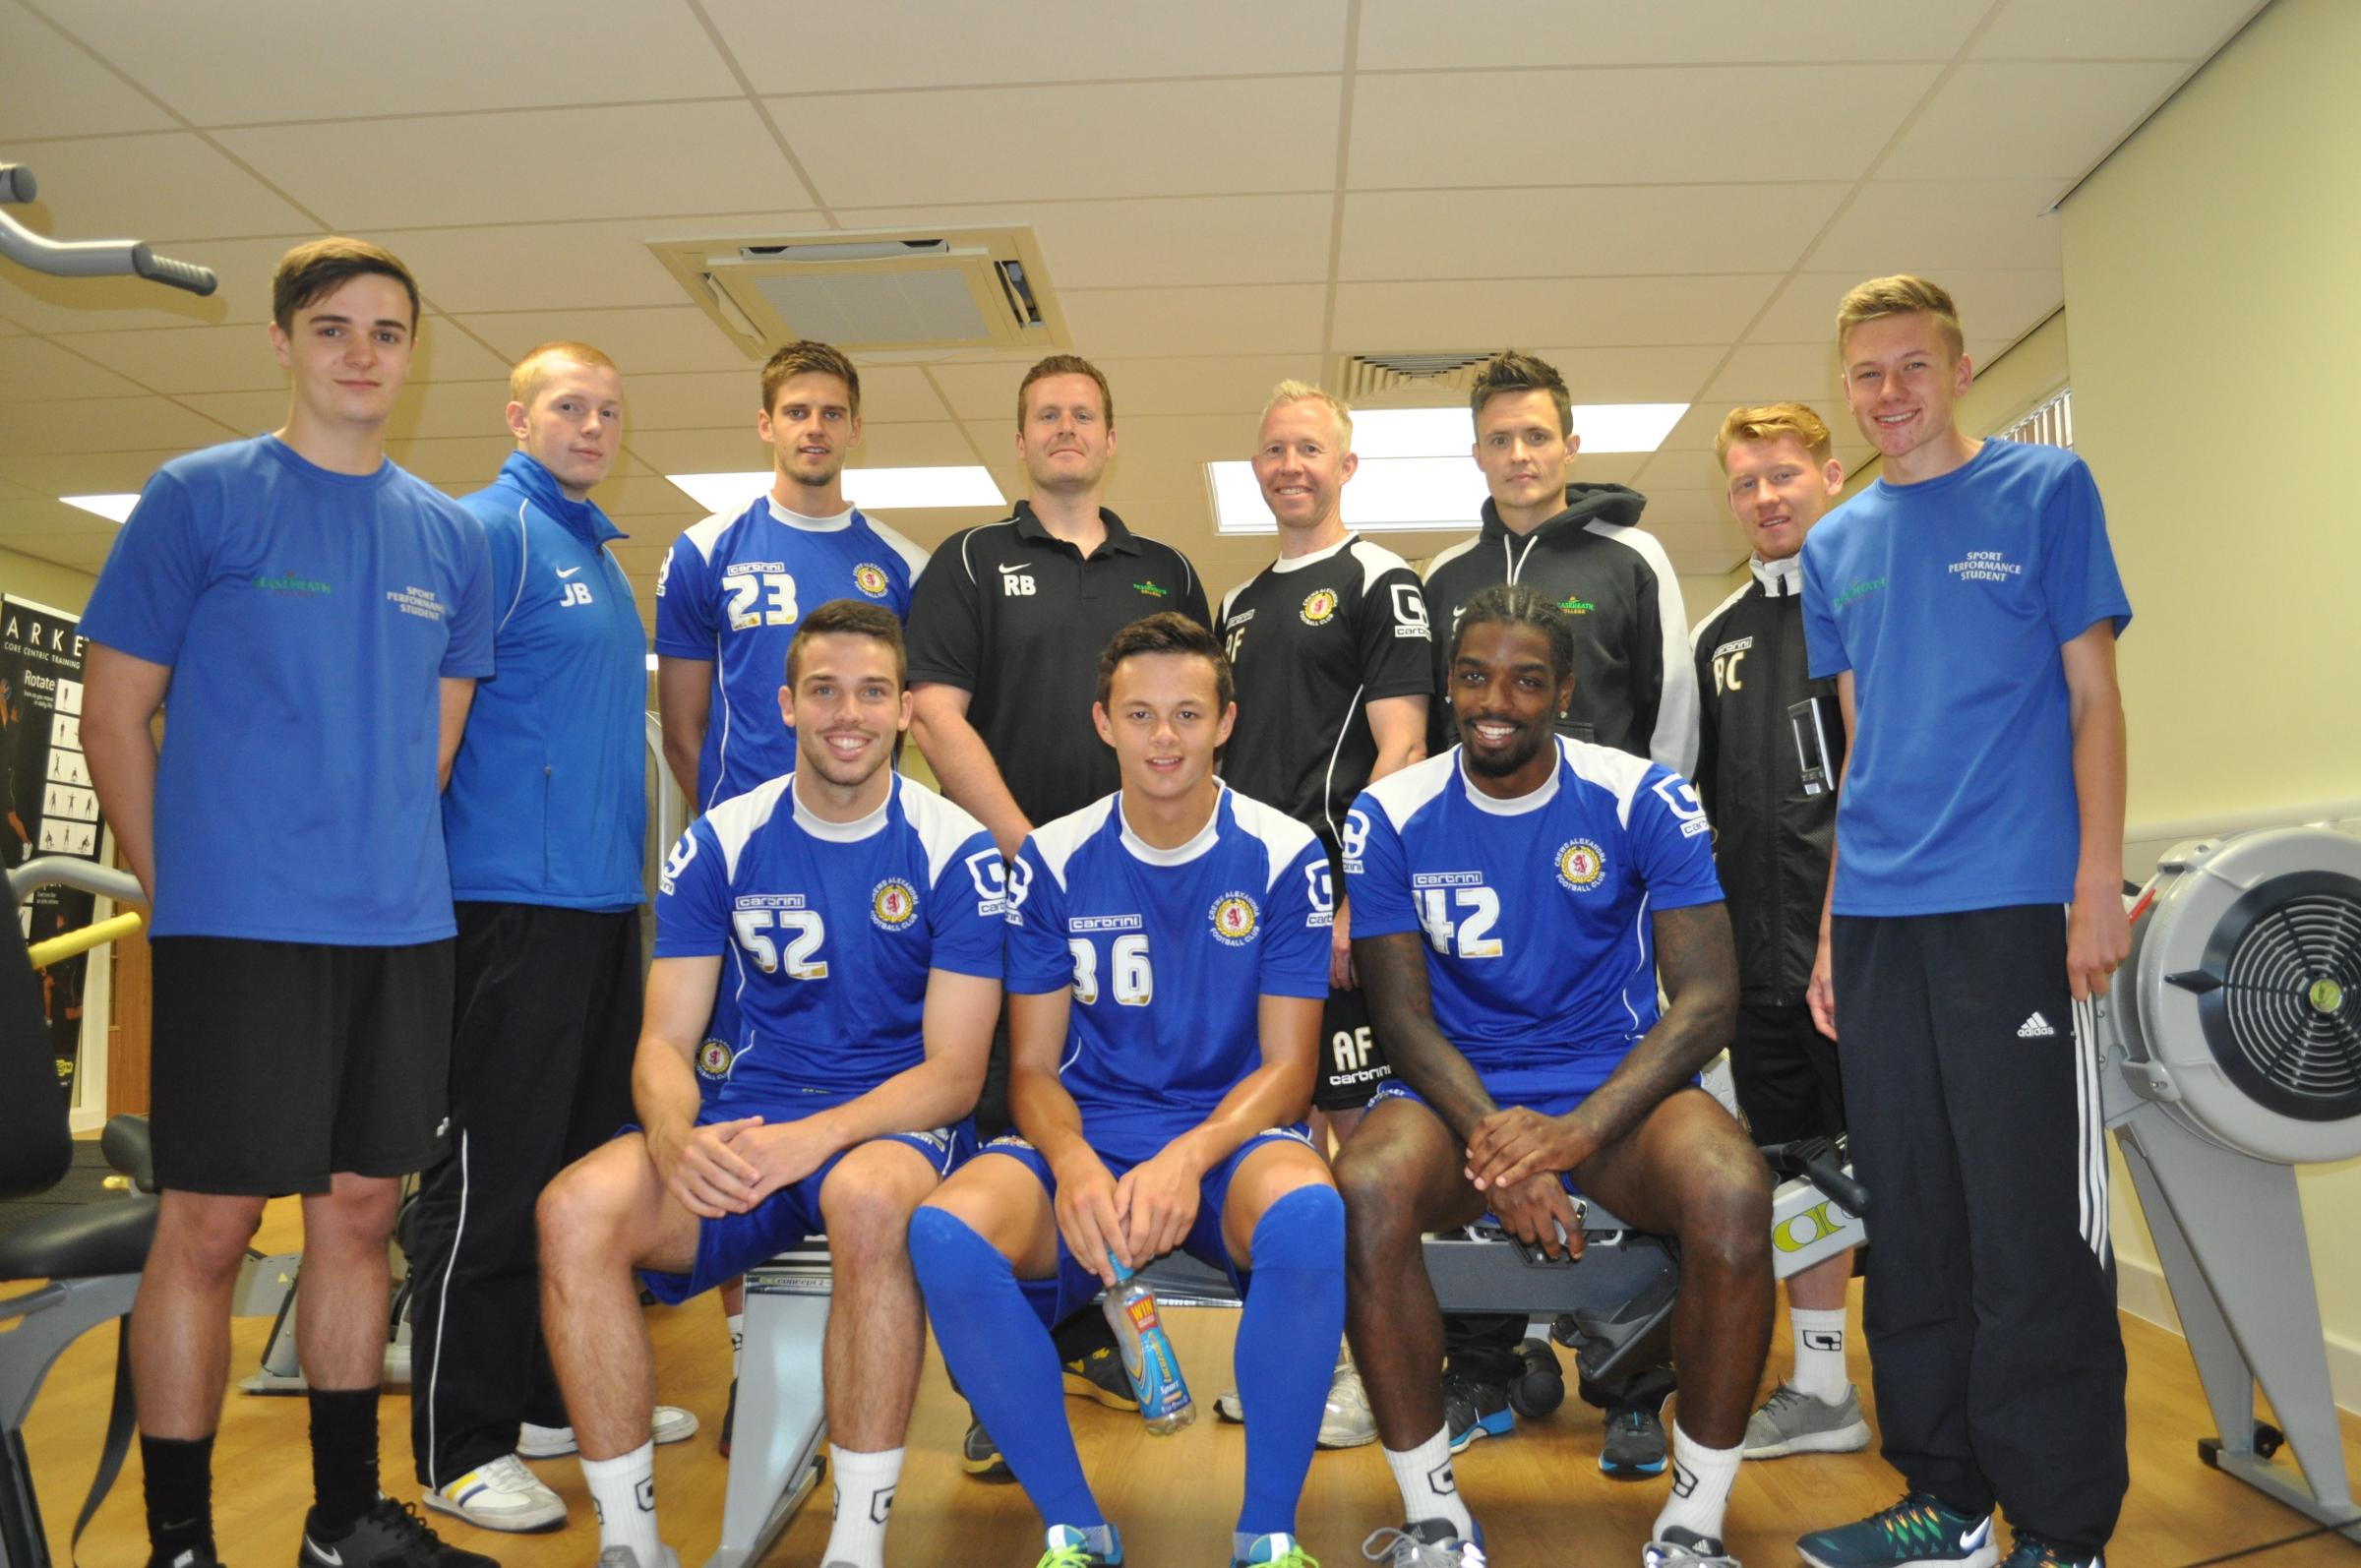 First team players Jon Guthrie, Brad Inman, Perry Ng and Anthony Grant join Richard Brooke, Andy Franks, Reaseheath sports lecturer Stuart Fisher, Crewe Alex assistant sport scientist Ben Cope and sports performance students James Brown, Stephen Ganley an